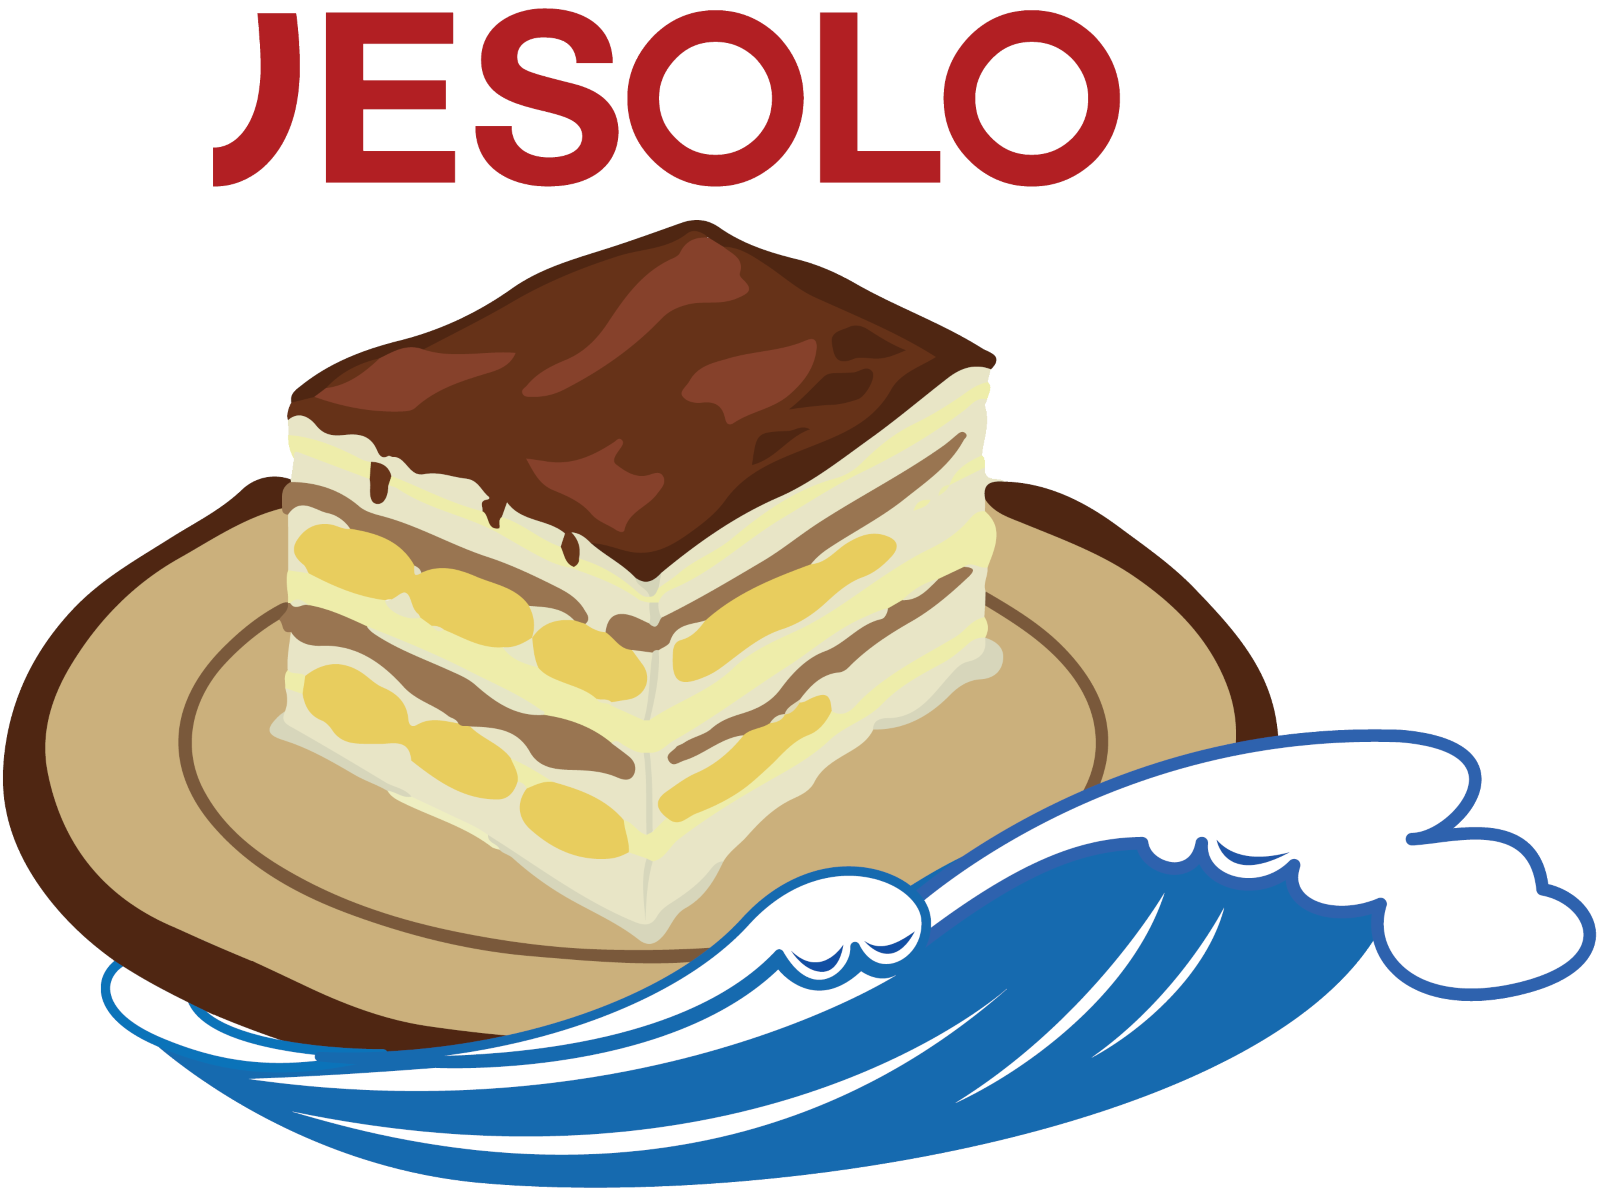 https://tiramisudayjesolo.it/wp-content/uploads/2019/03/Tiramisu_Jesolo.png